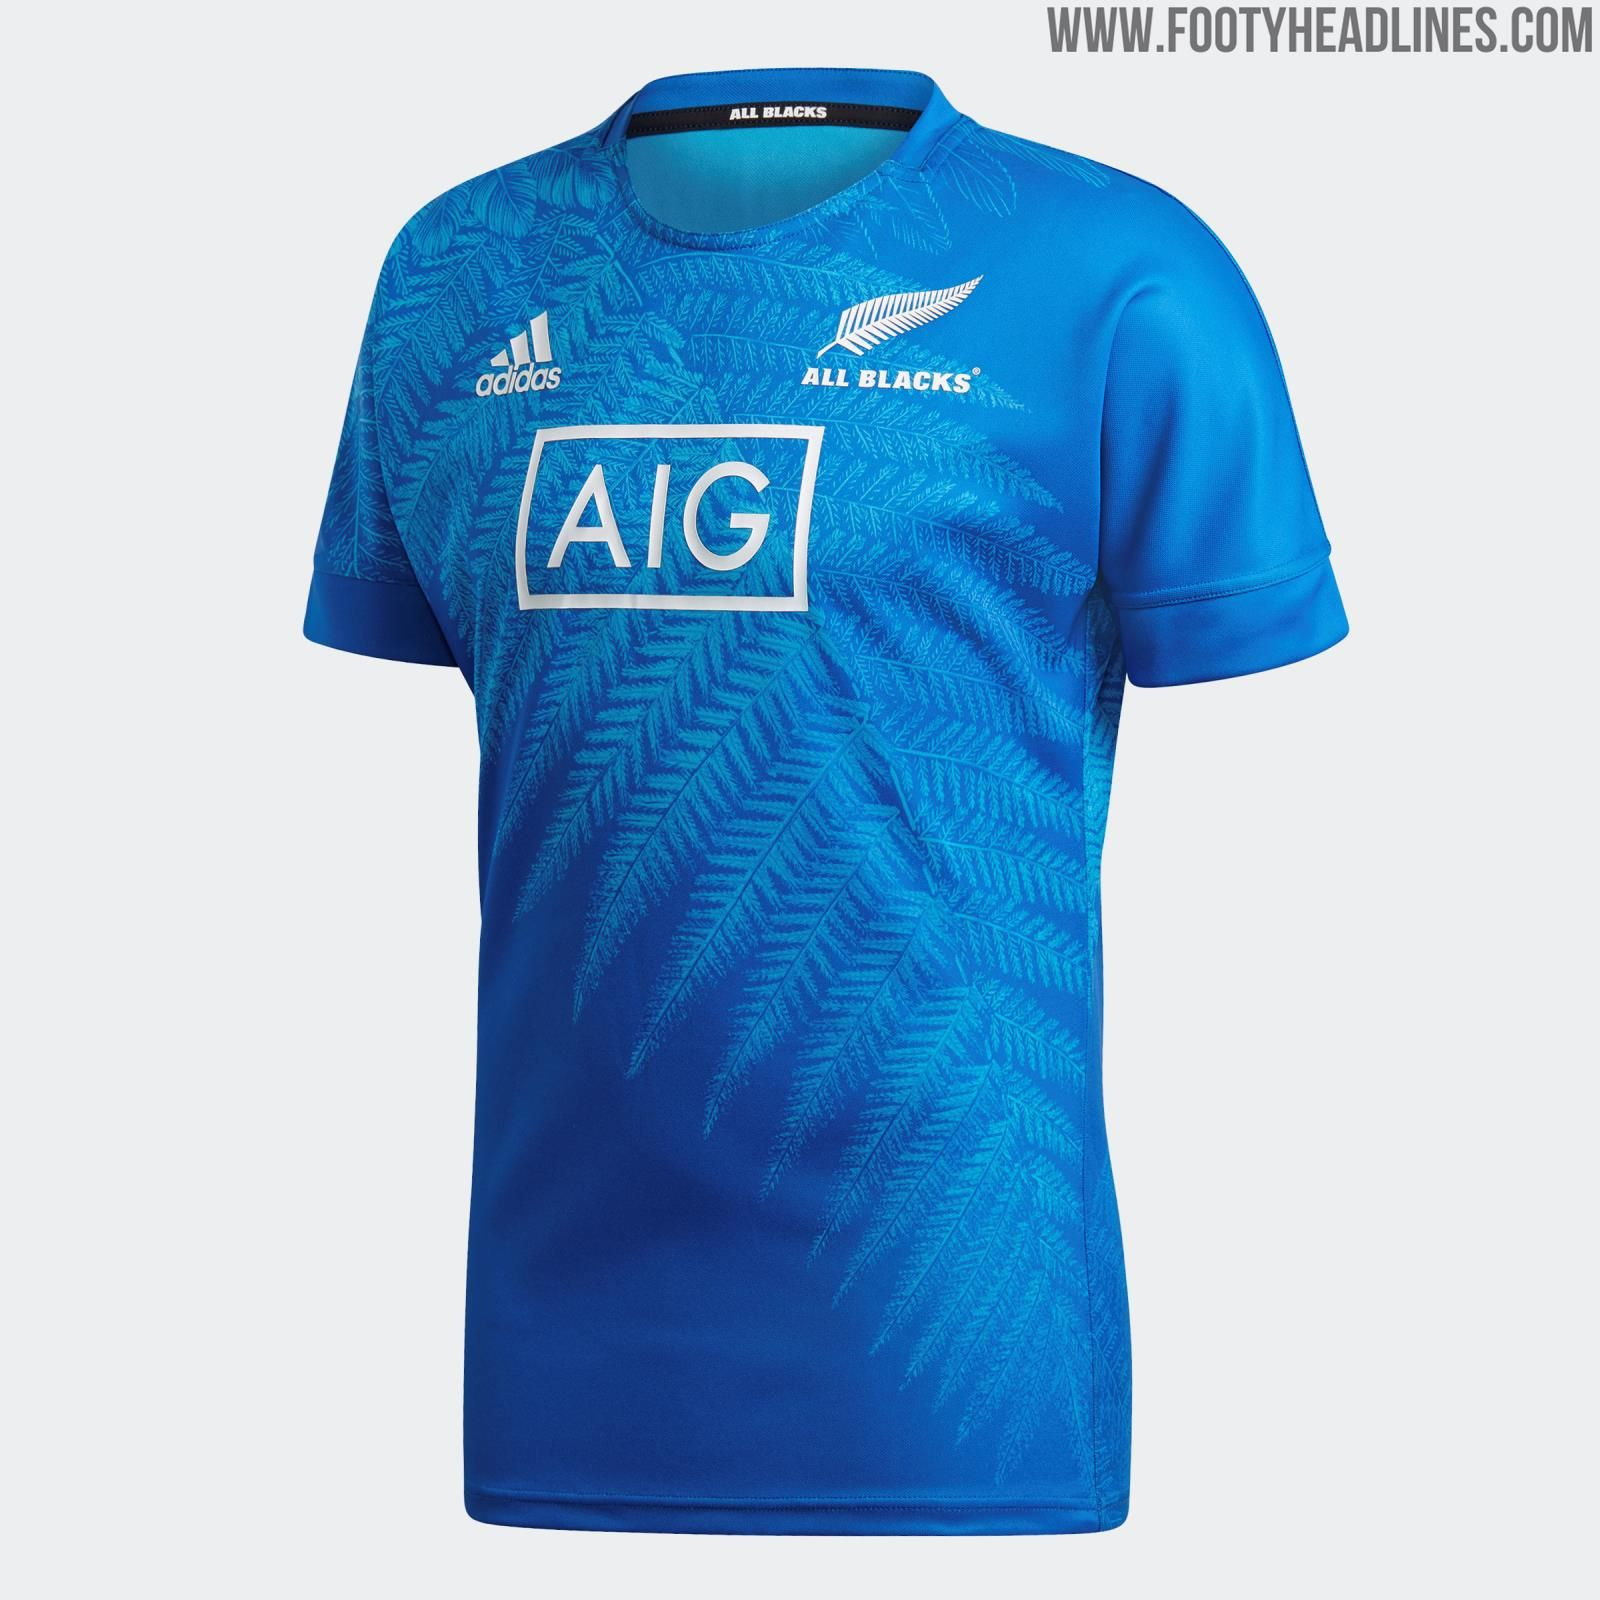 First Kit Designed By Yohji Yamamoto Since Real Madrid S In 2014 Amazing Adidas New Zealand 2019 Rugby World Cup Jerseys Released